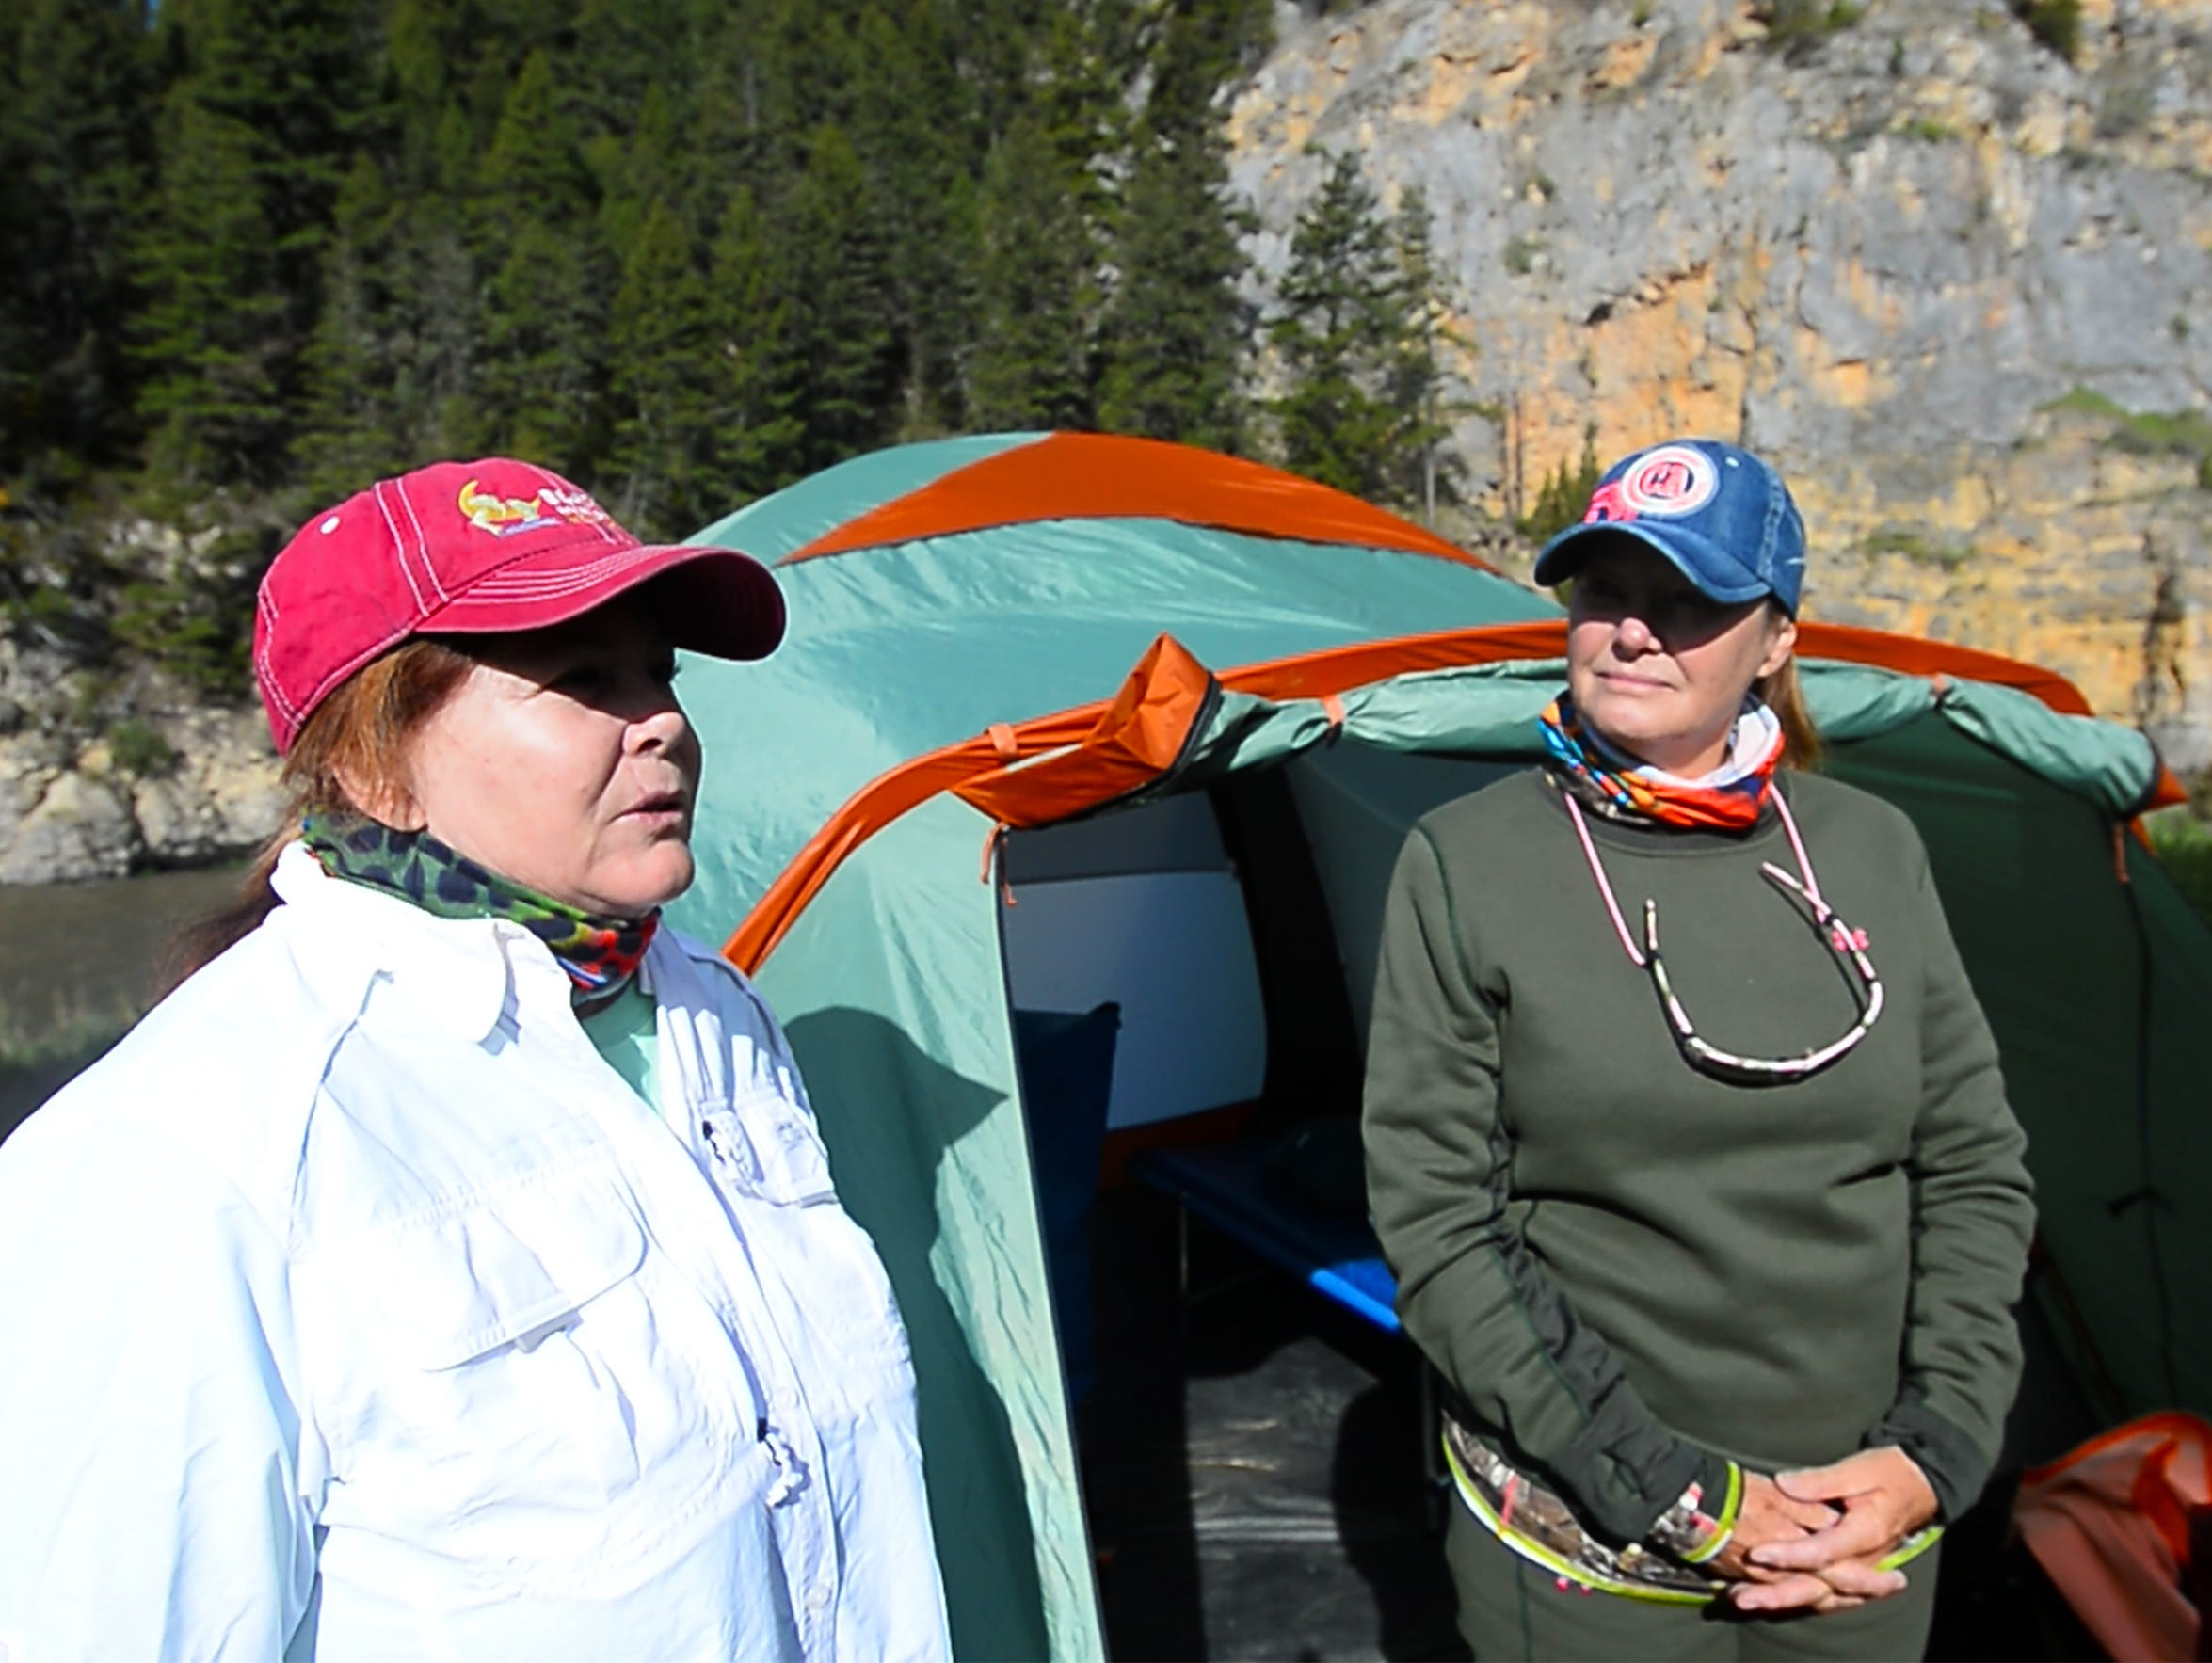 Lisa Kay Epstein, left, and Ronda Mills, friends from